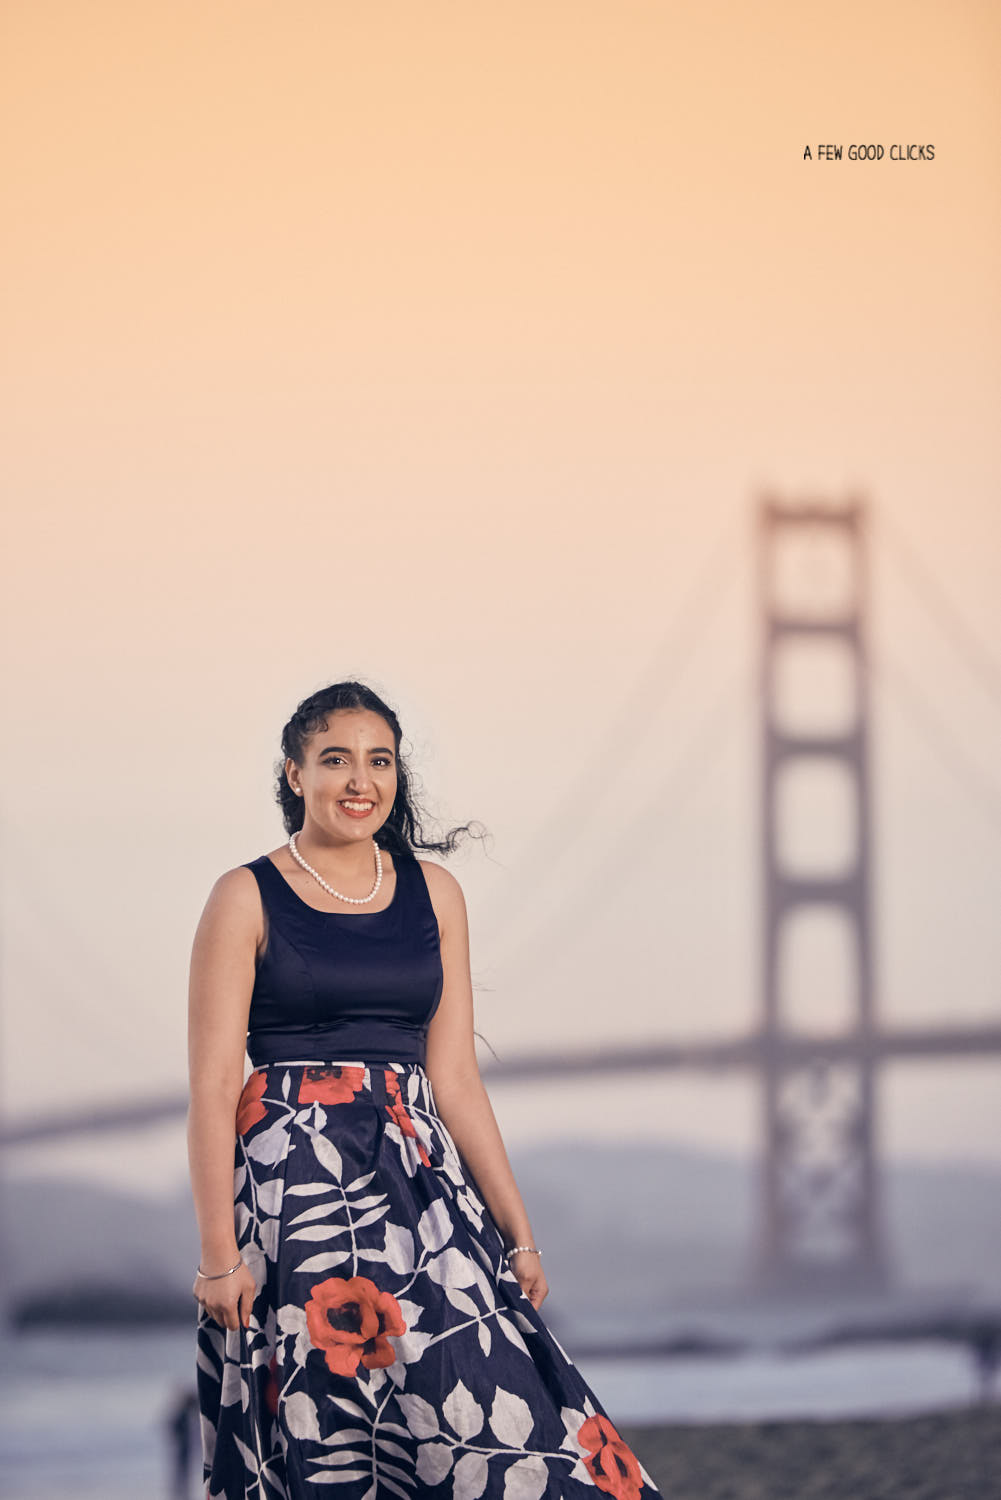 bakers-beach-engagement-session-photography-san-francisco 17.jpg